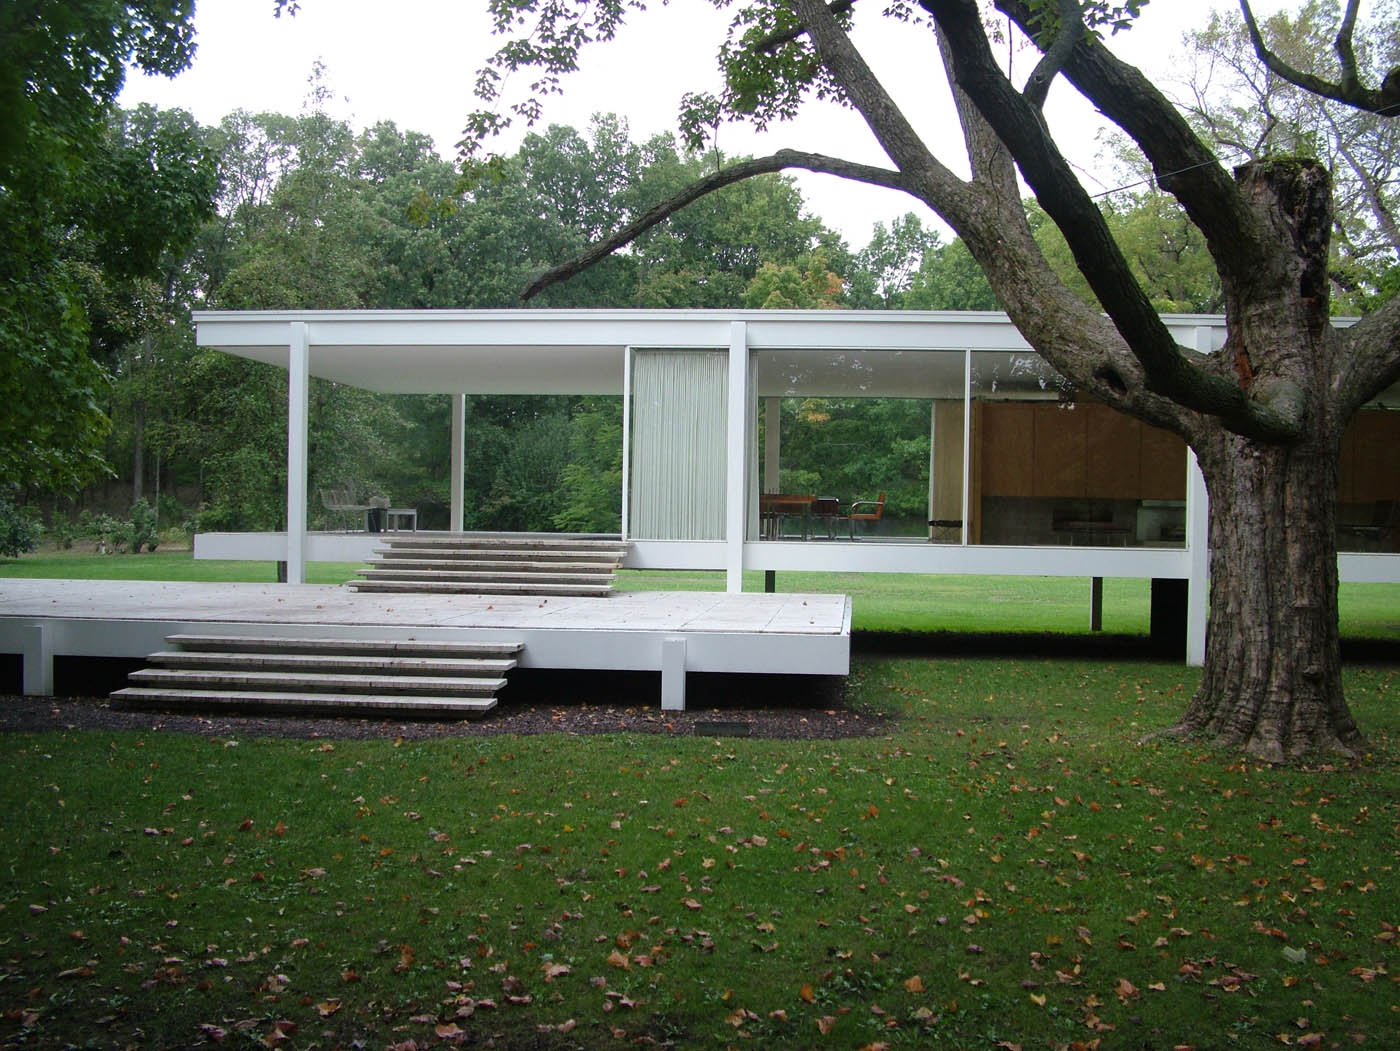 Farnsworth House by Mies van der Rohe has glass walls with a timber core for living, full length curtains for privacy.